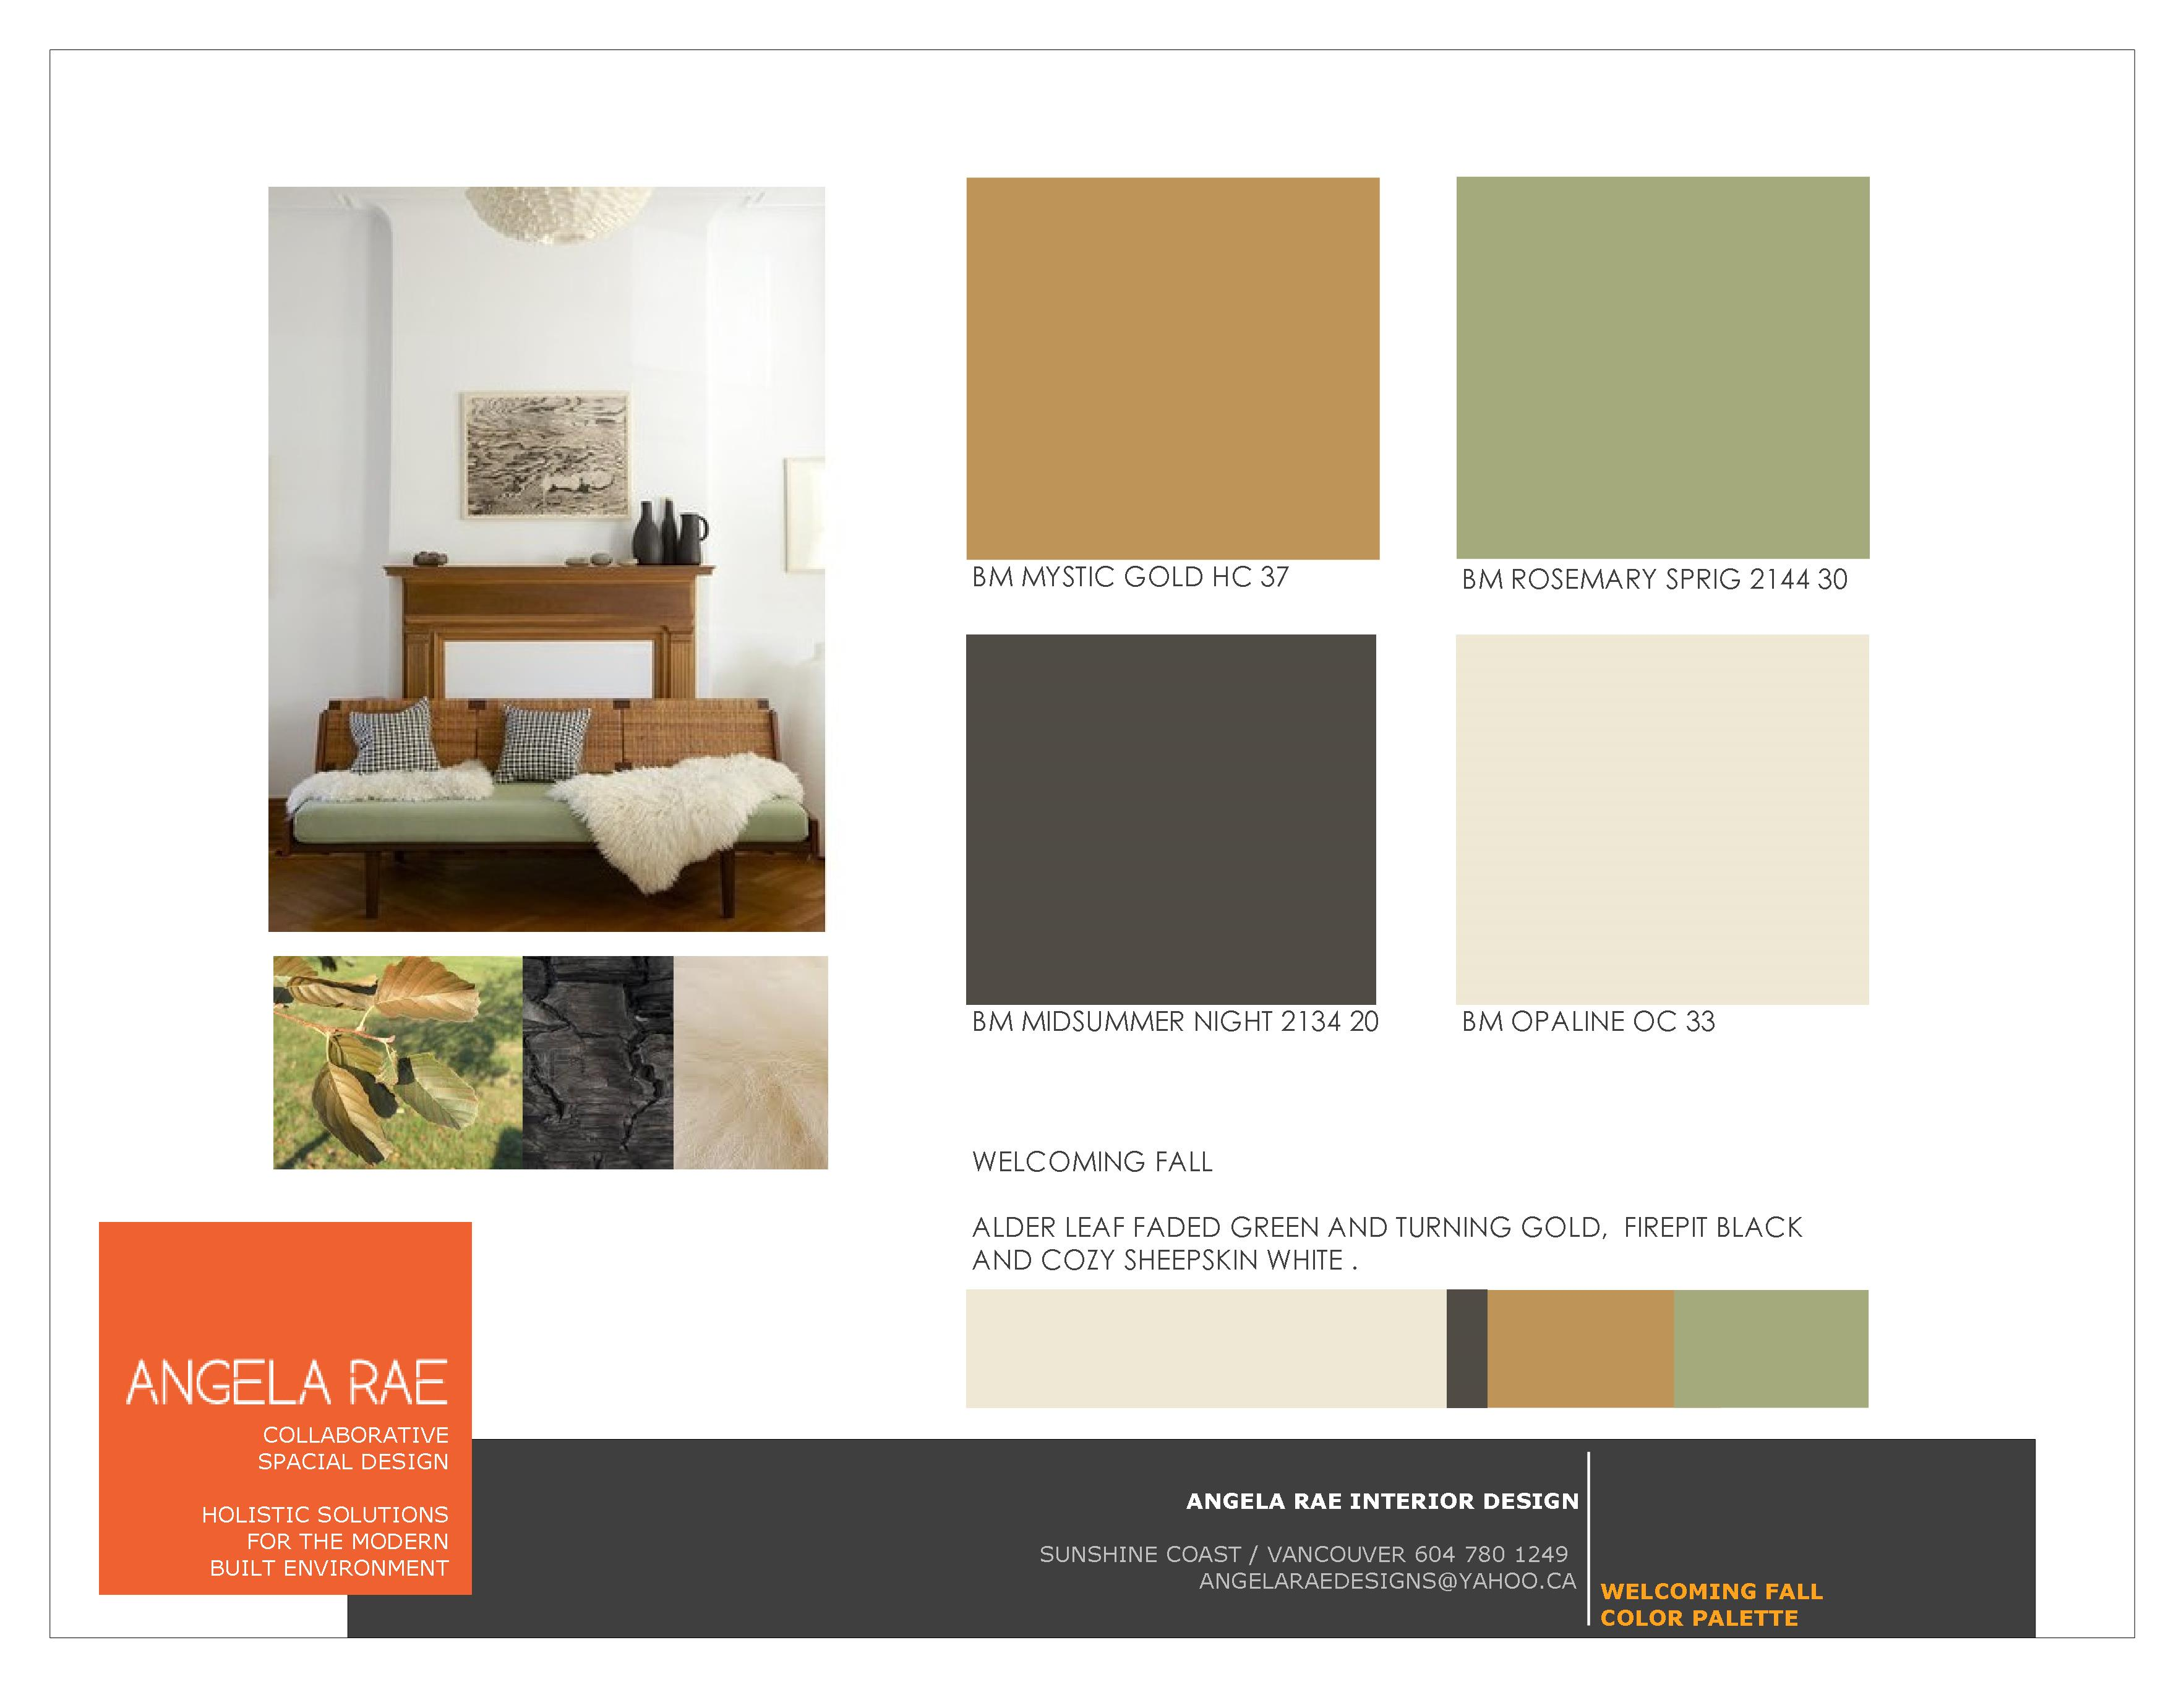 Fall colour palette inspiration from angela rae interior design coast lifestyles network for Color palette for interior design